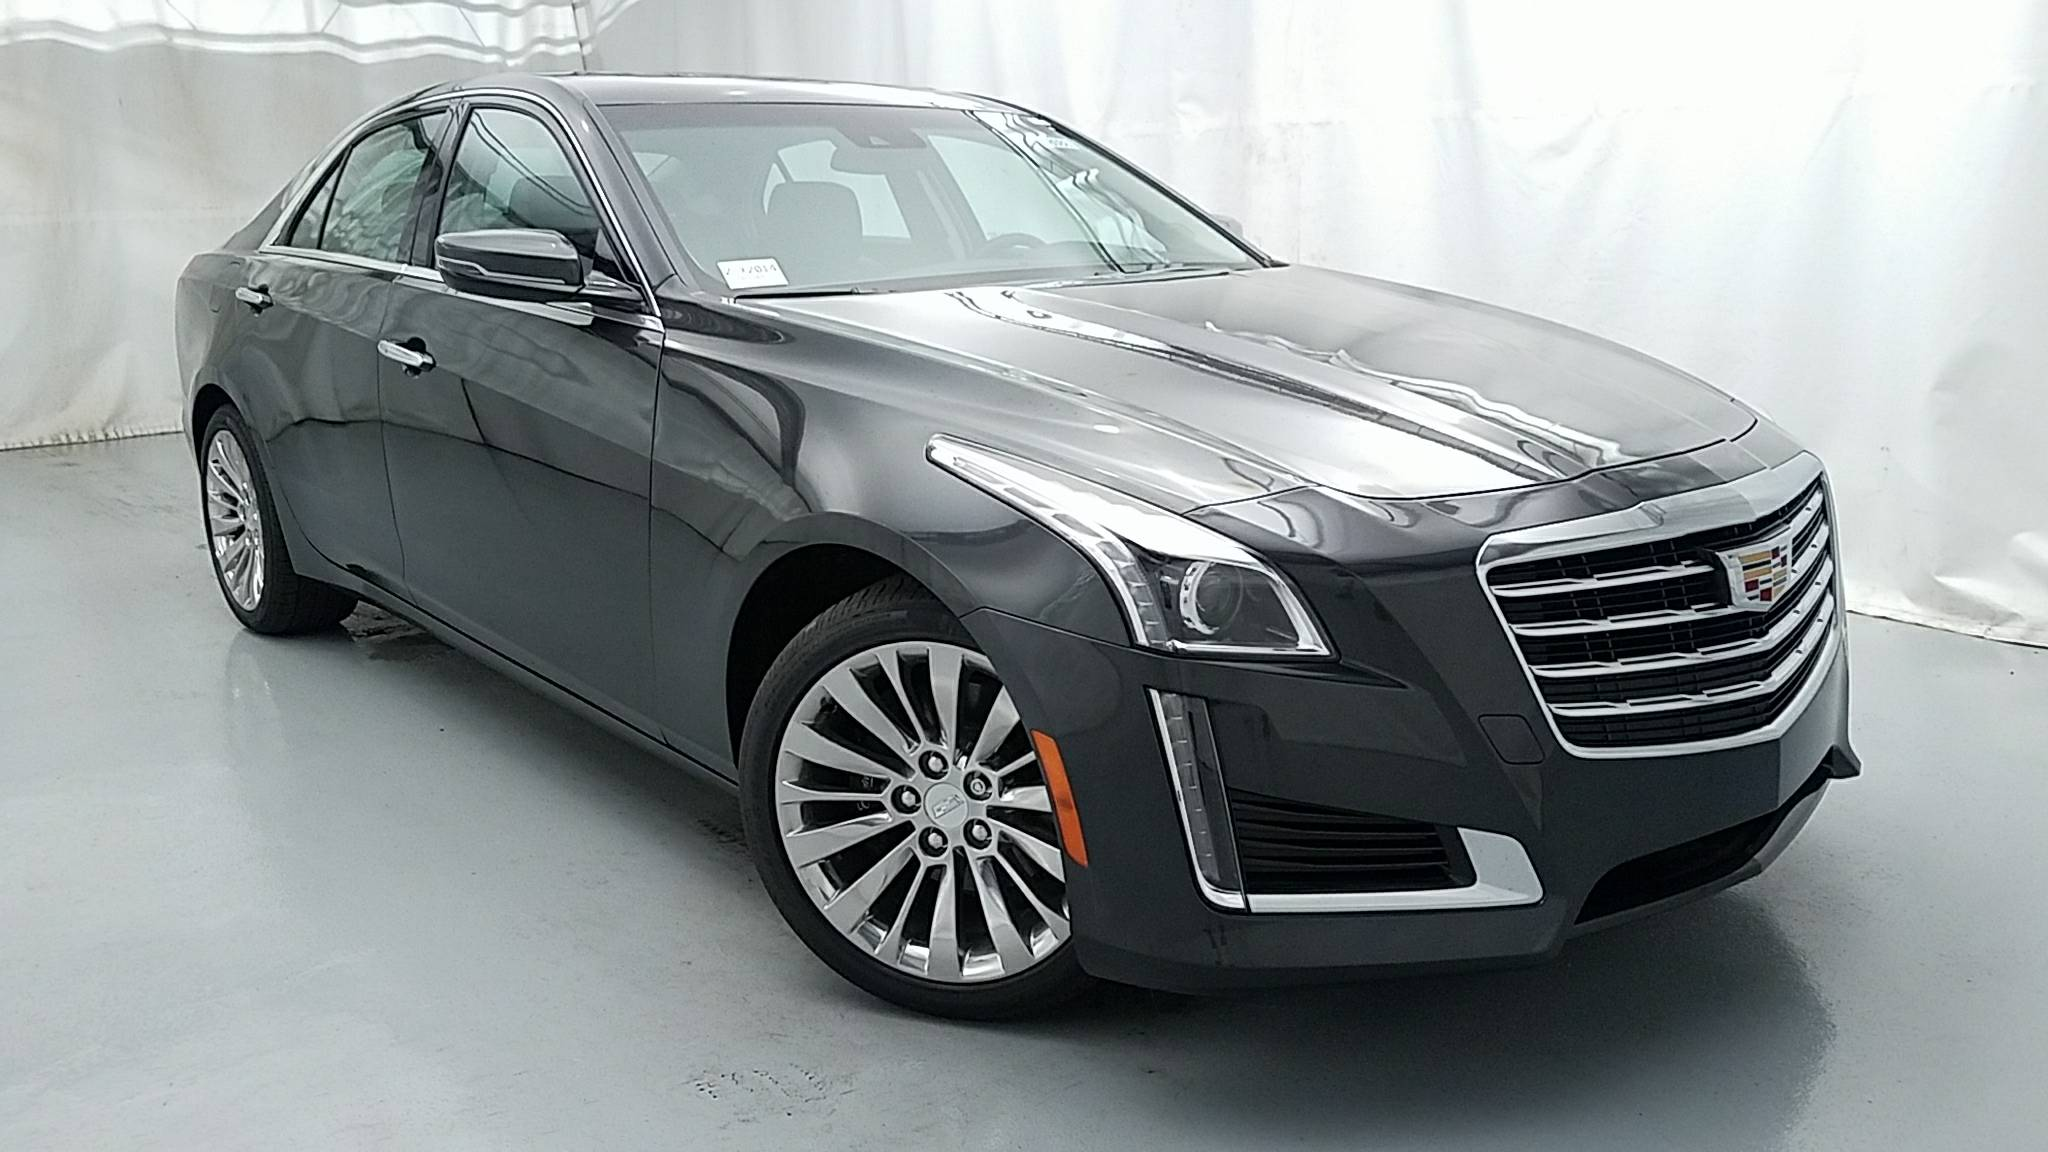 oshawa motor img trim sales sport cts cadillac luxury base wheel for drive new vehicles ontario automatic rear v in sale select